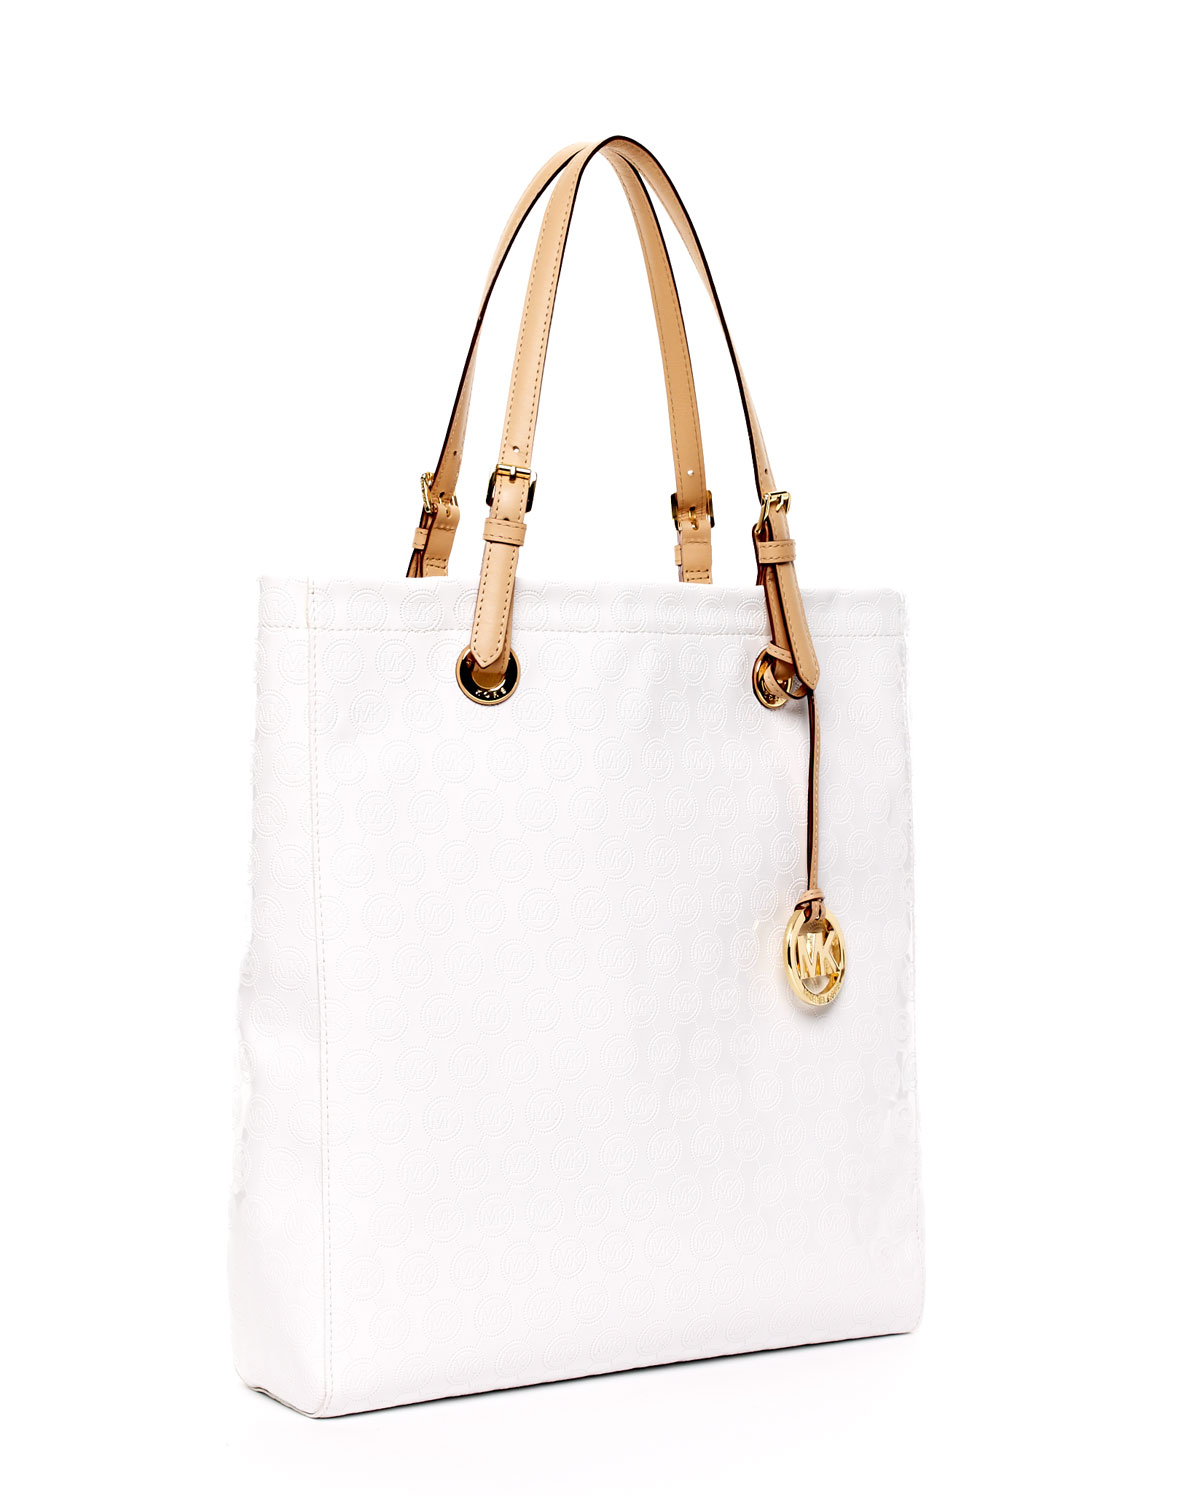 lyst michael kors jet set north south item tote white in white rh lyst com